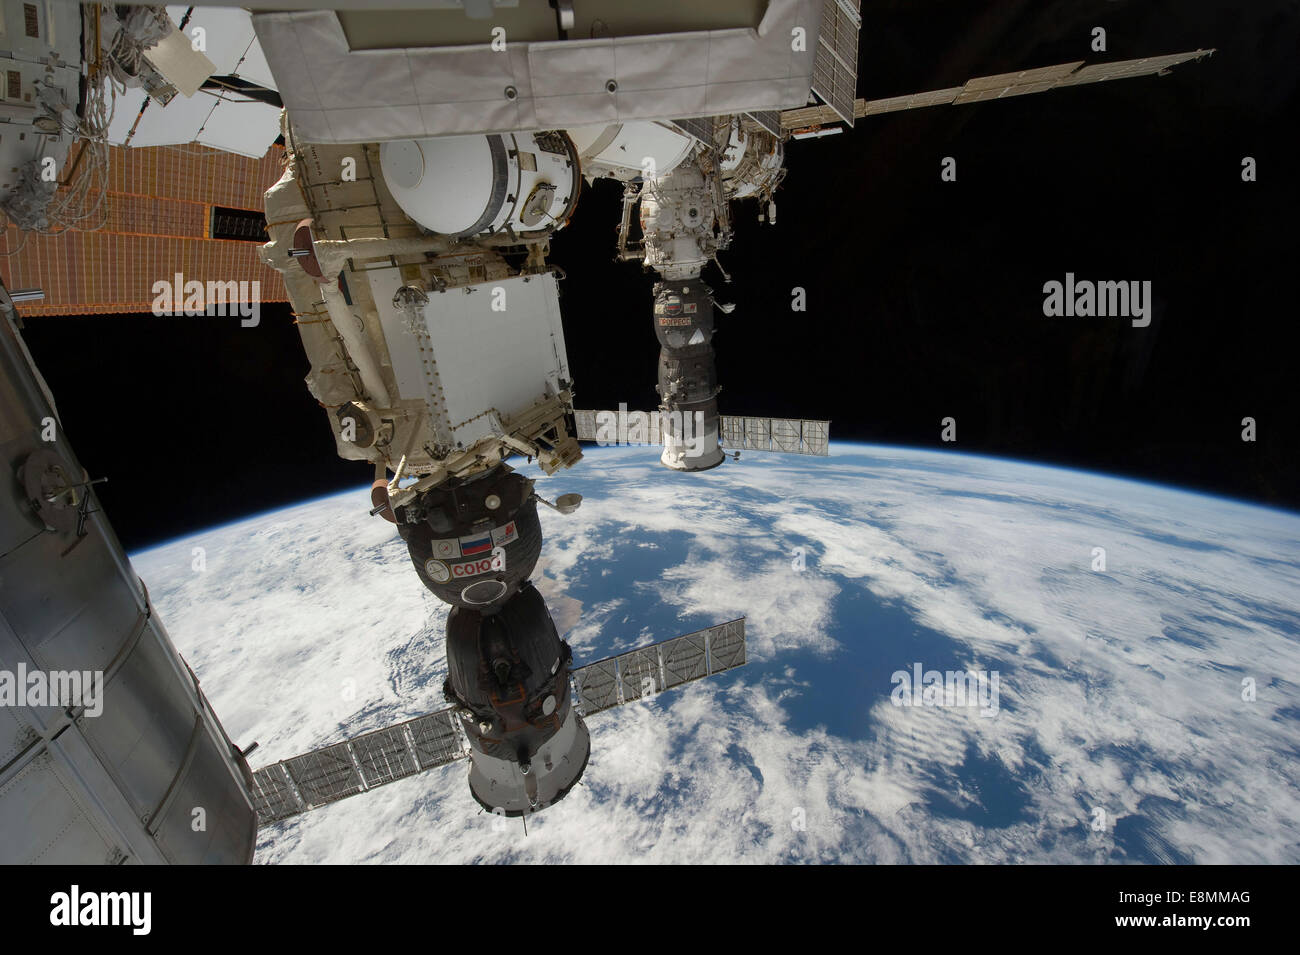 December 31, 2011 - A Russian Soyuz (near foreground) is docked to Rassvet, also known as the Mini-Research Module - Stock Image